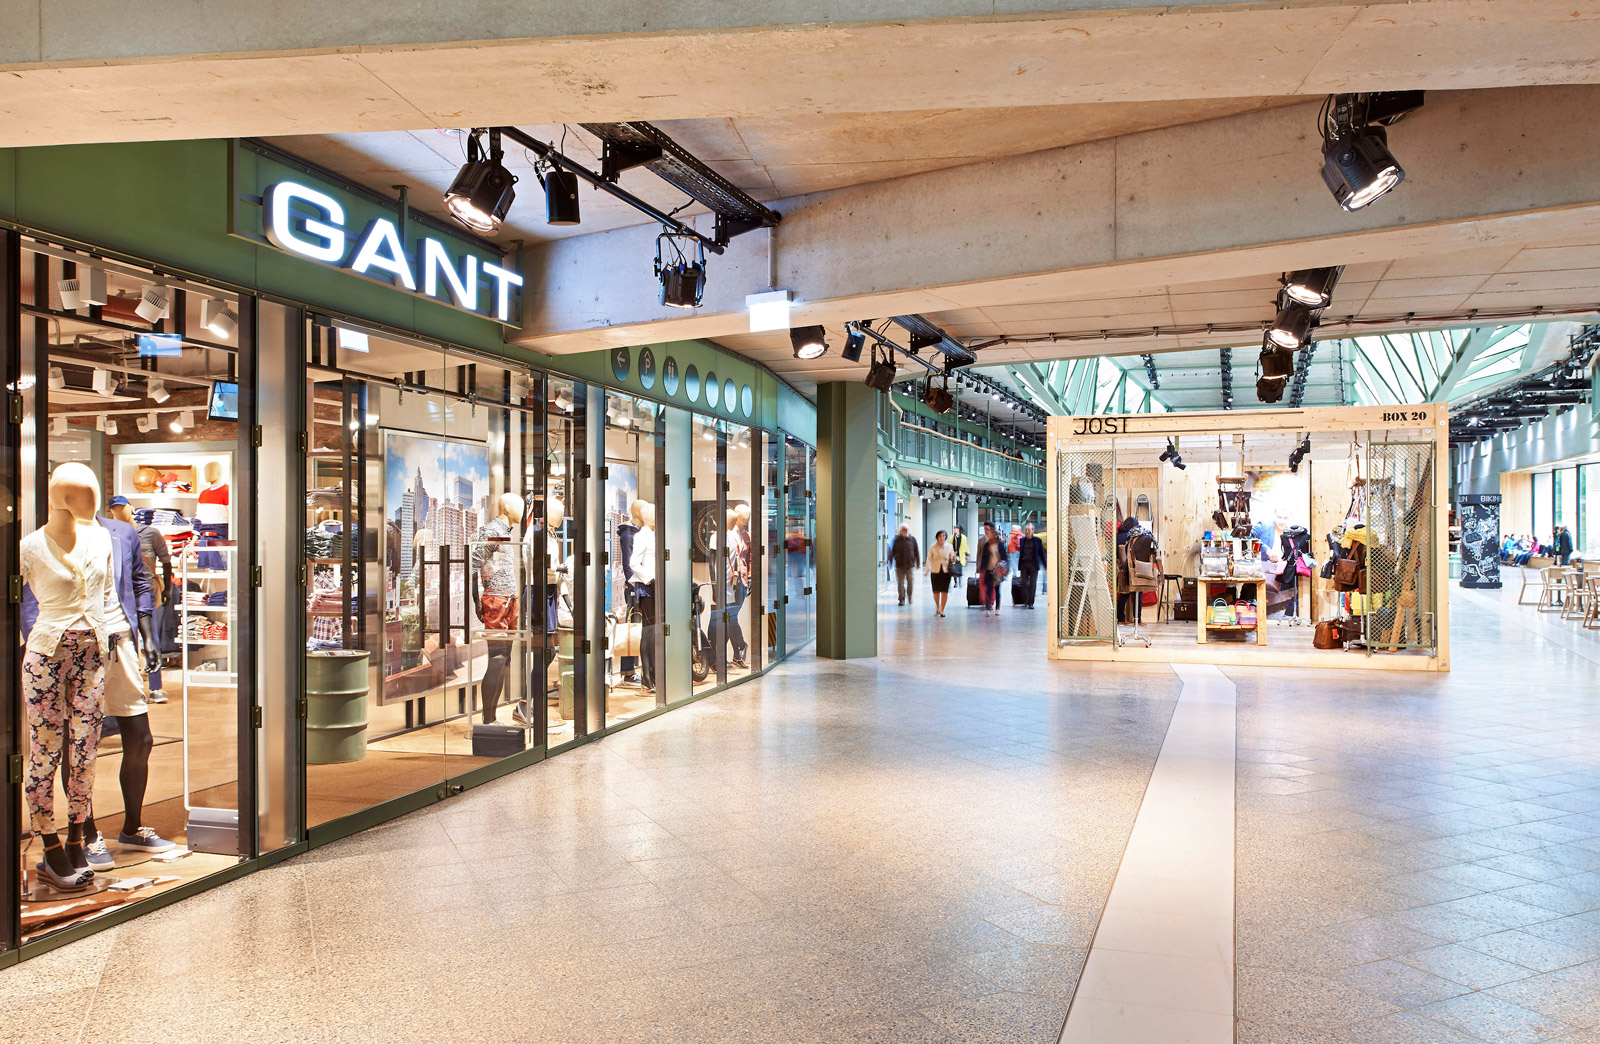 10 Destination Stores That Chart New Retail Territory